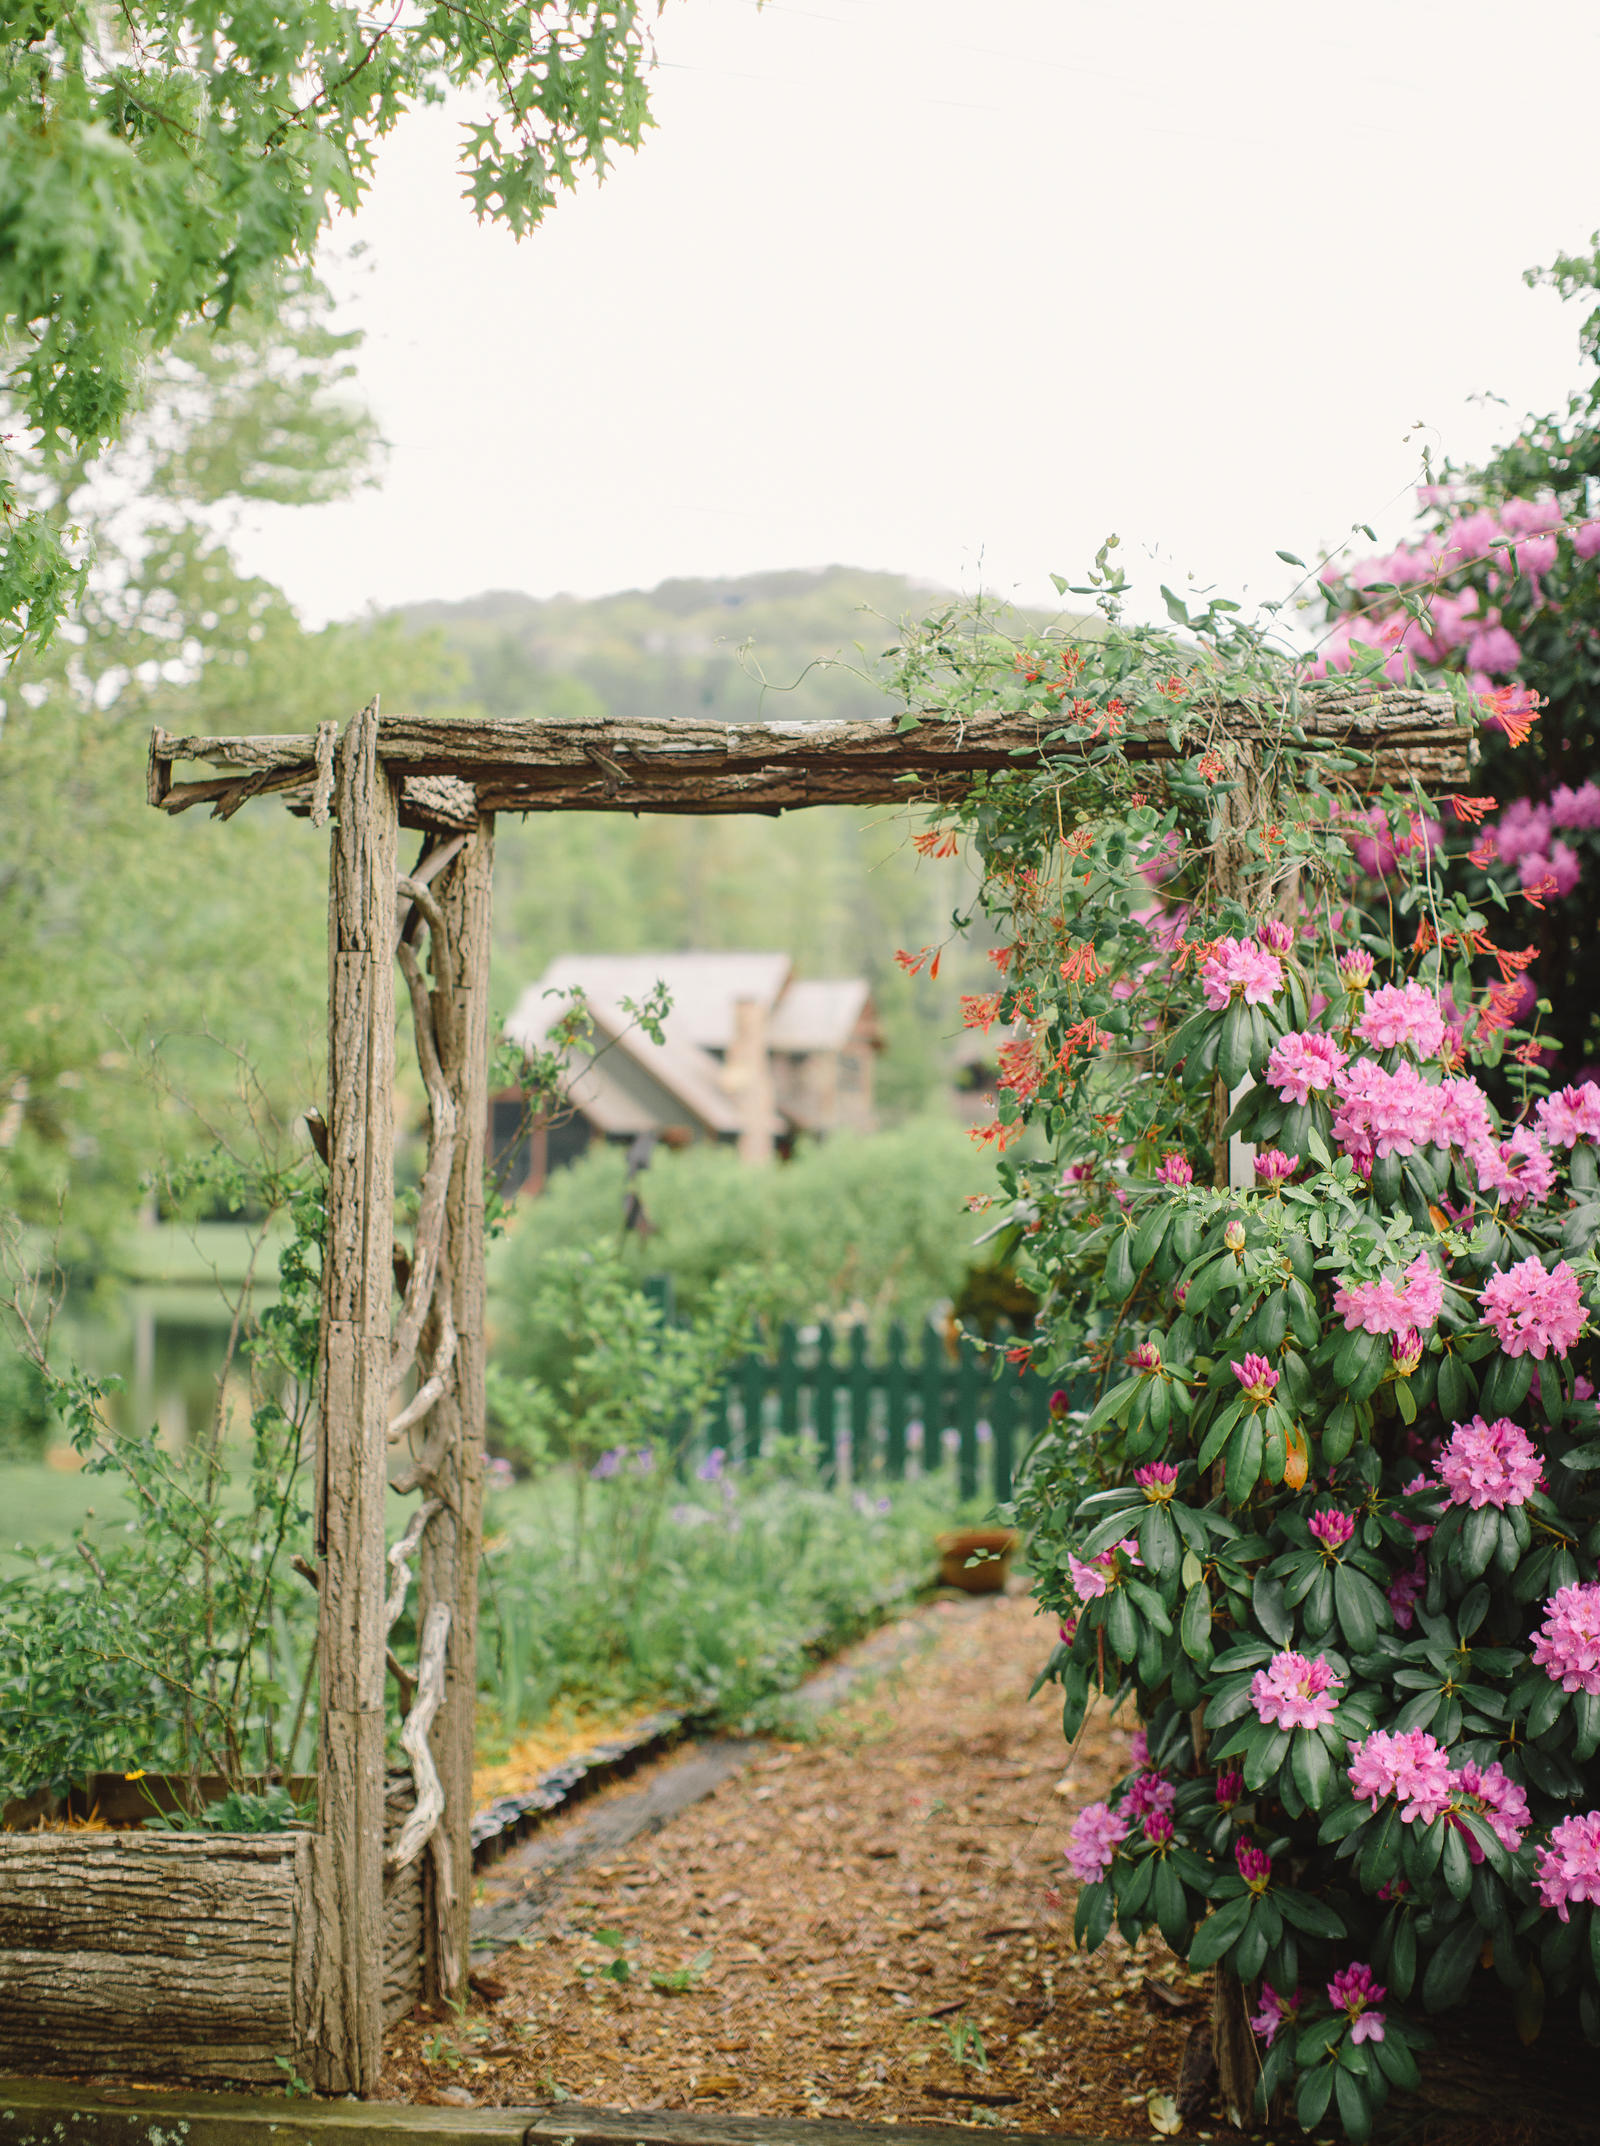 A rustic trellis stands at the entrance of a garden.